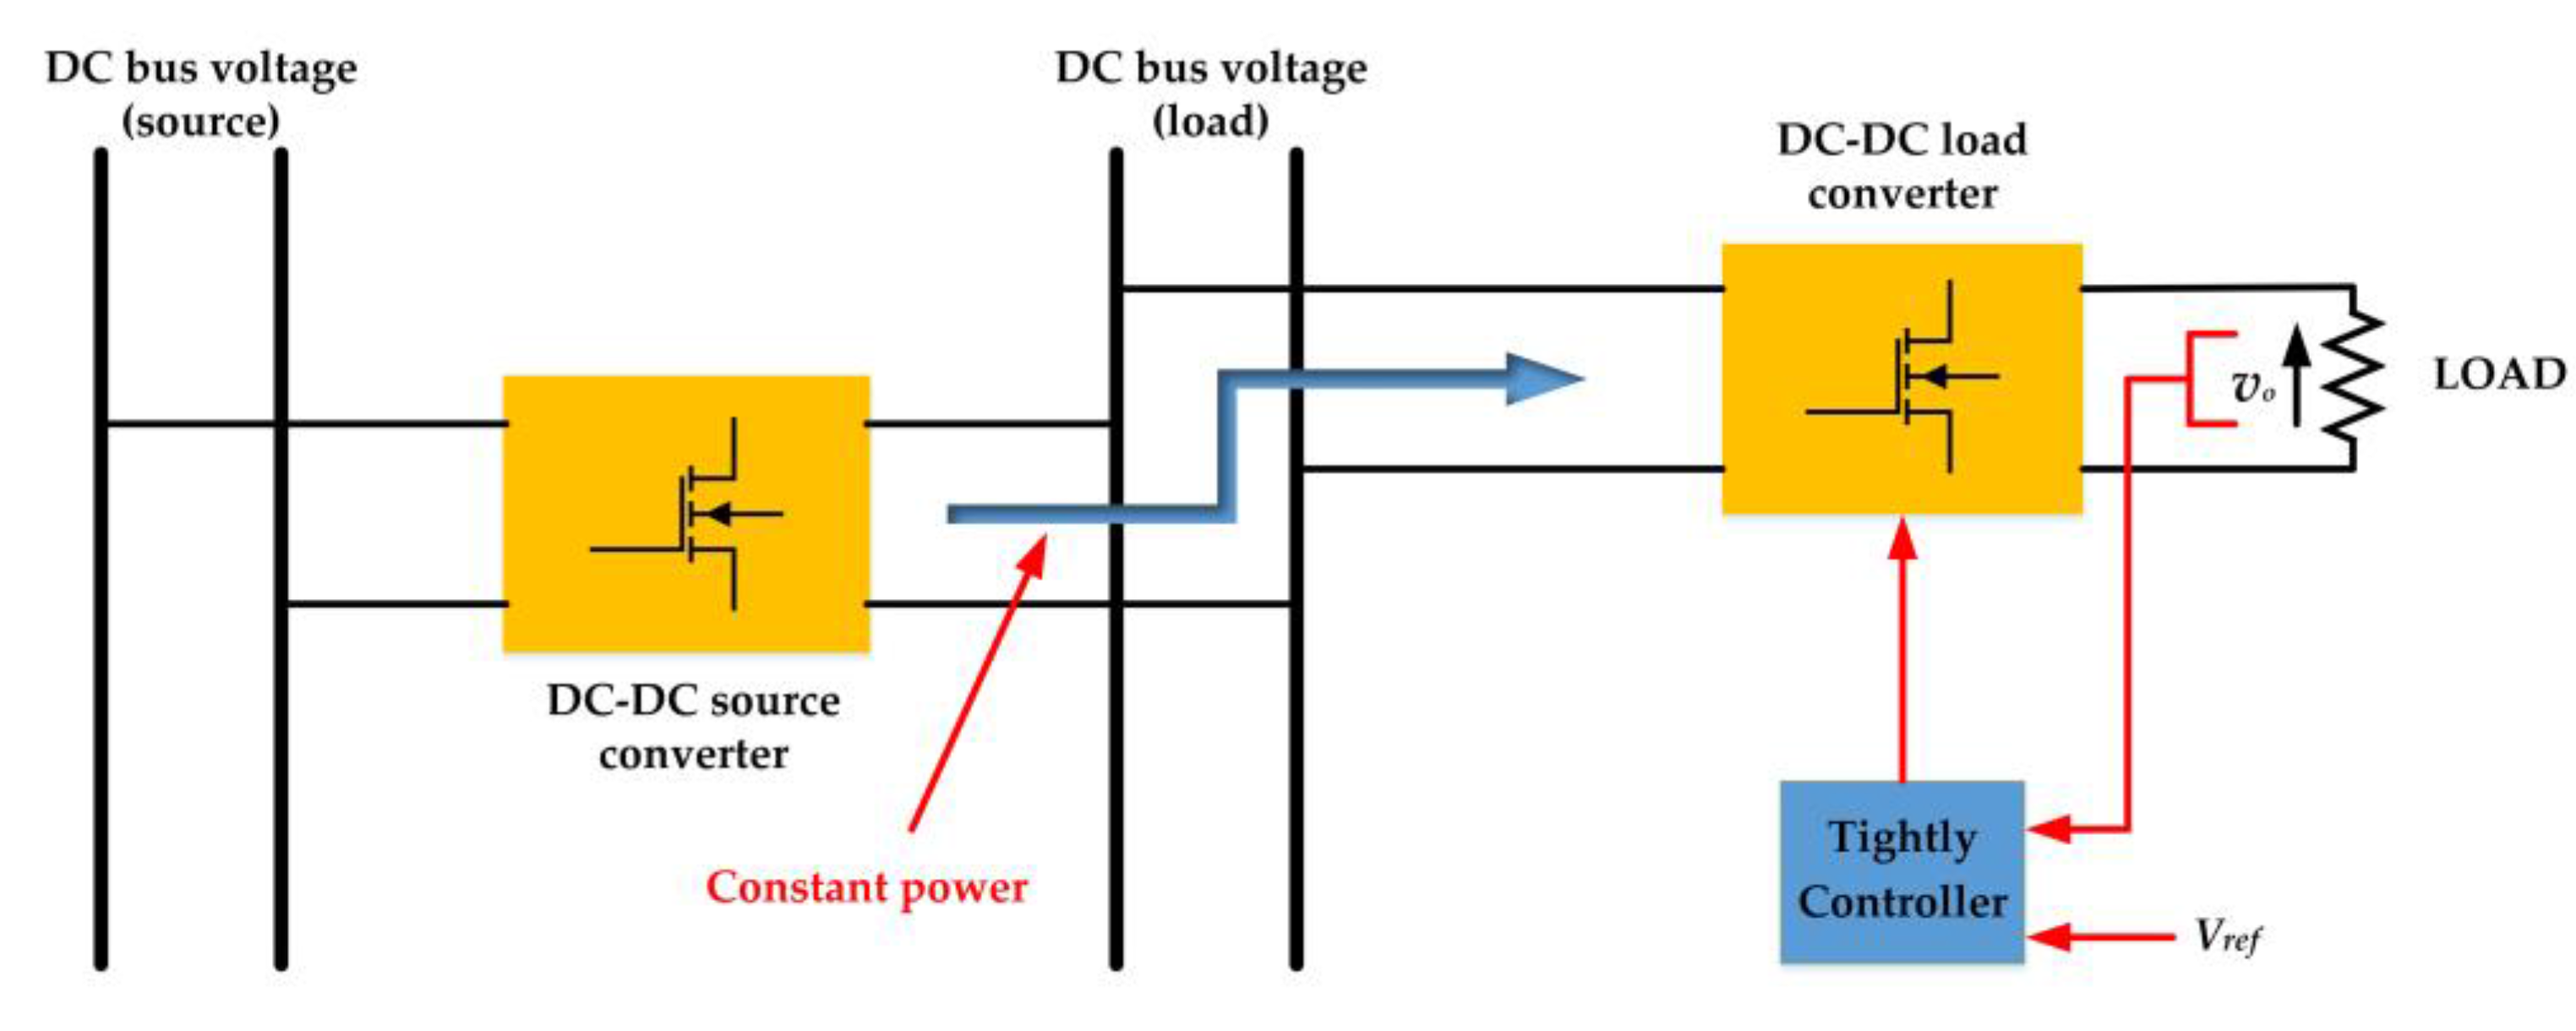 Energies Free Full Text Constant Power Loads Cpl With Ac Constantcurrent Source Design Electrical Engineering Stack 10 01656 G002